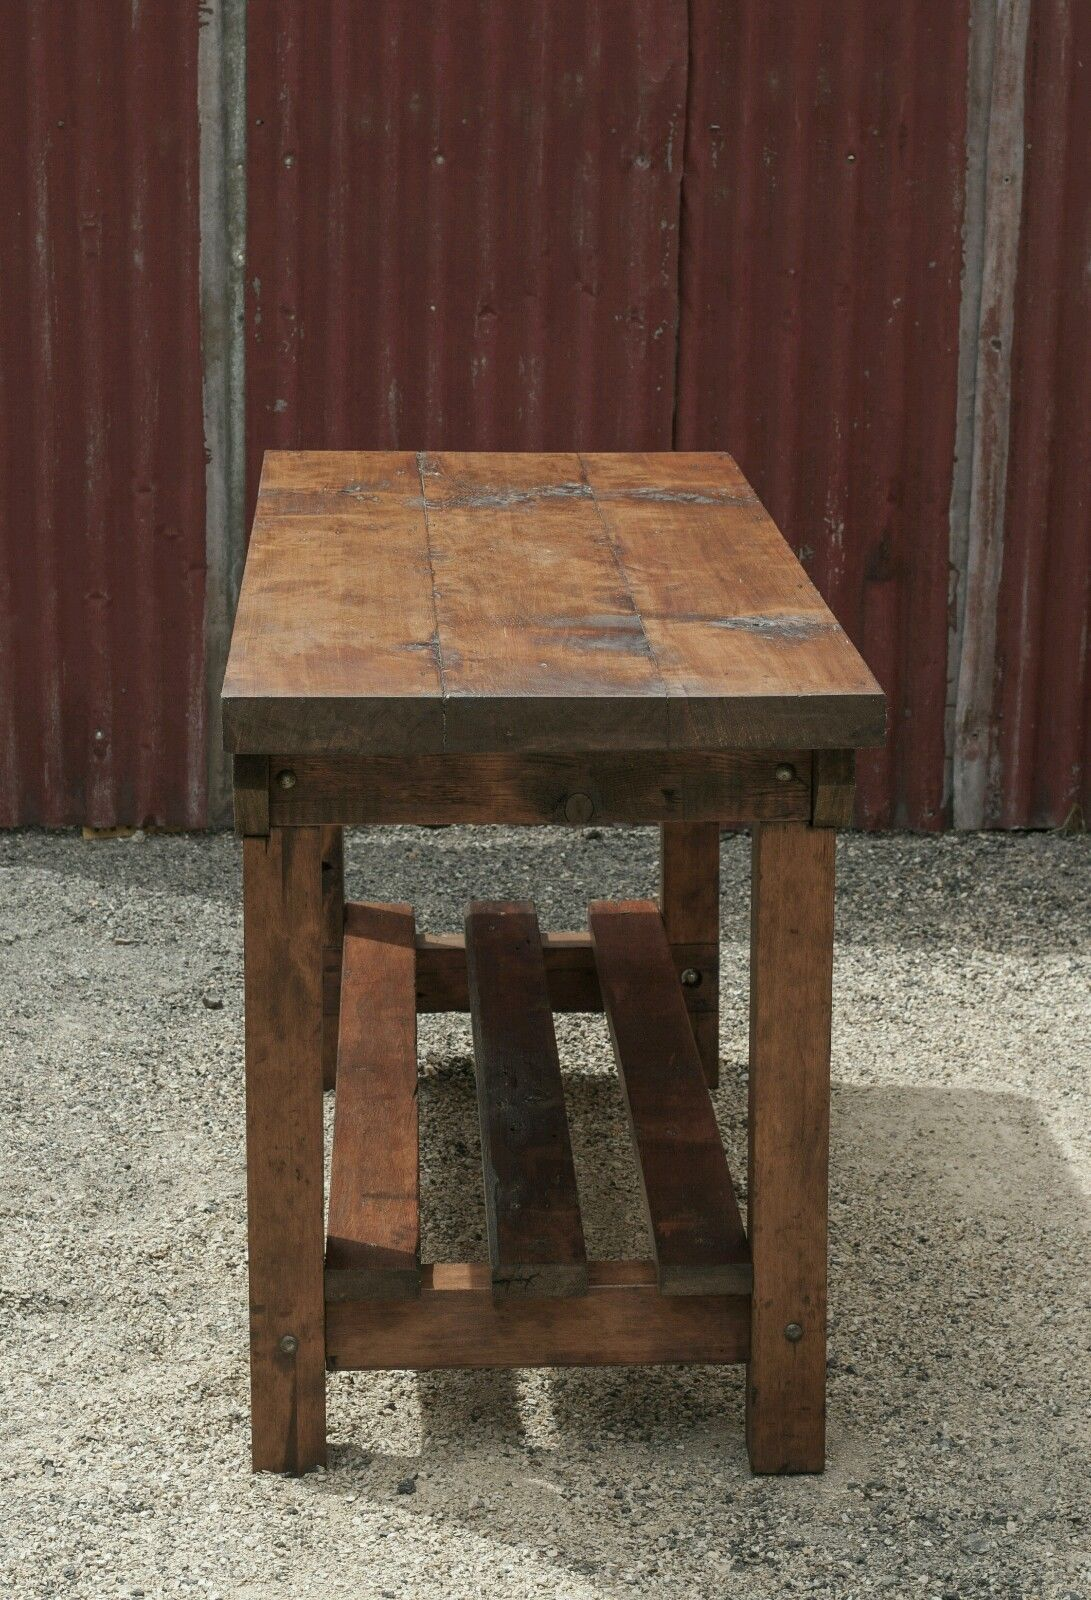 Sofa Workshop Ebay Outlet Rustic Vintage Style Industrial Workbench Table Kitchen Island